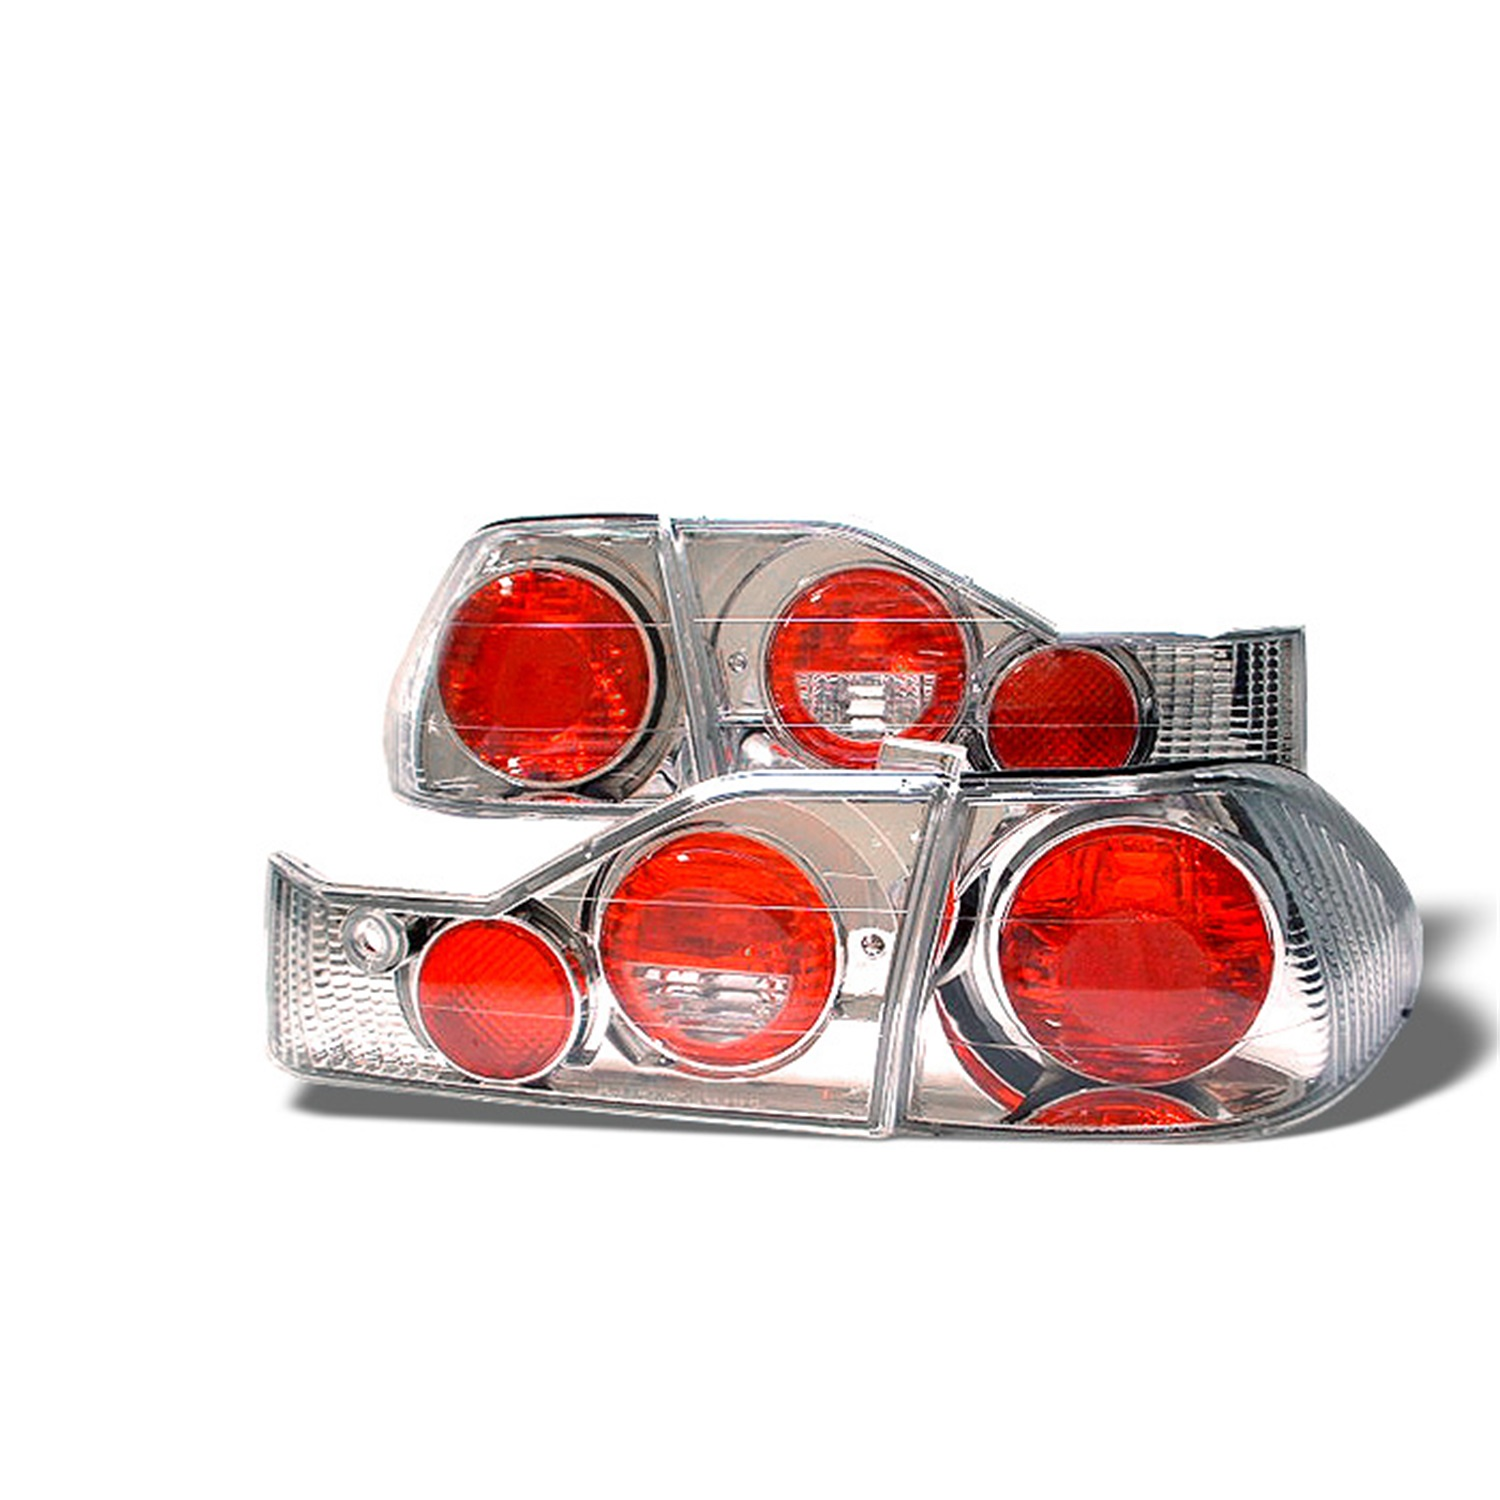 Spyder Auto 5004338 Altezza Tail Lights Fits 98-00 Accord